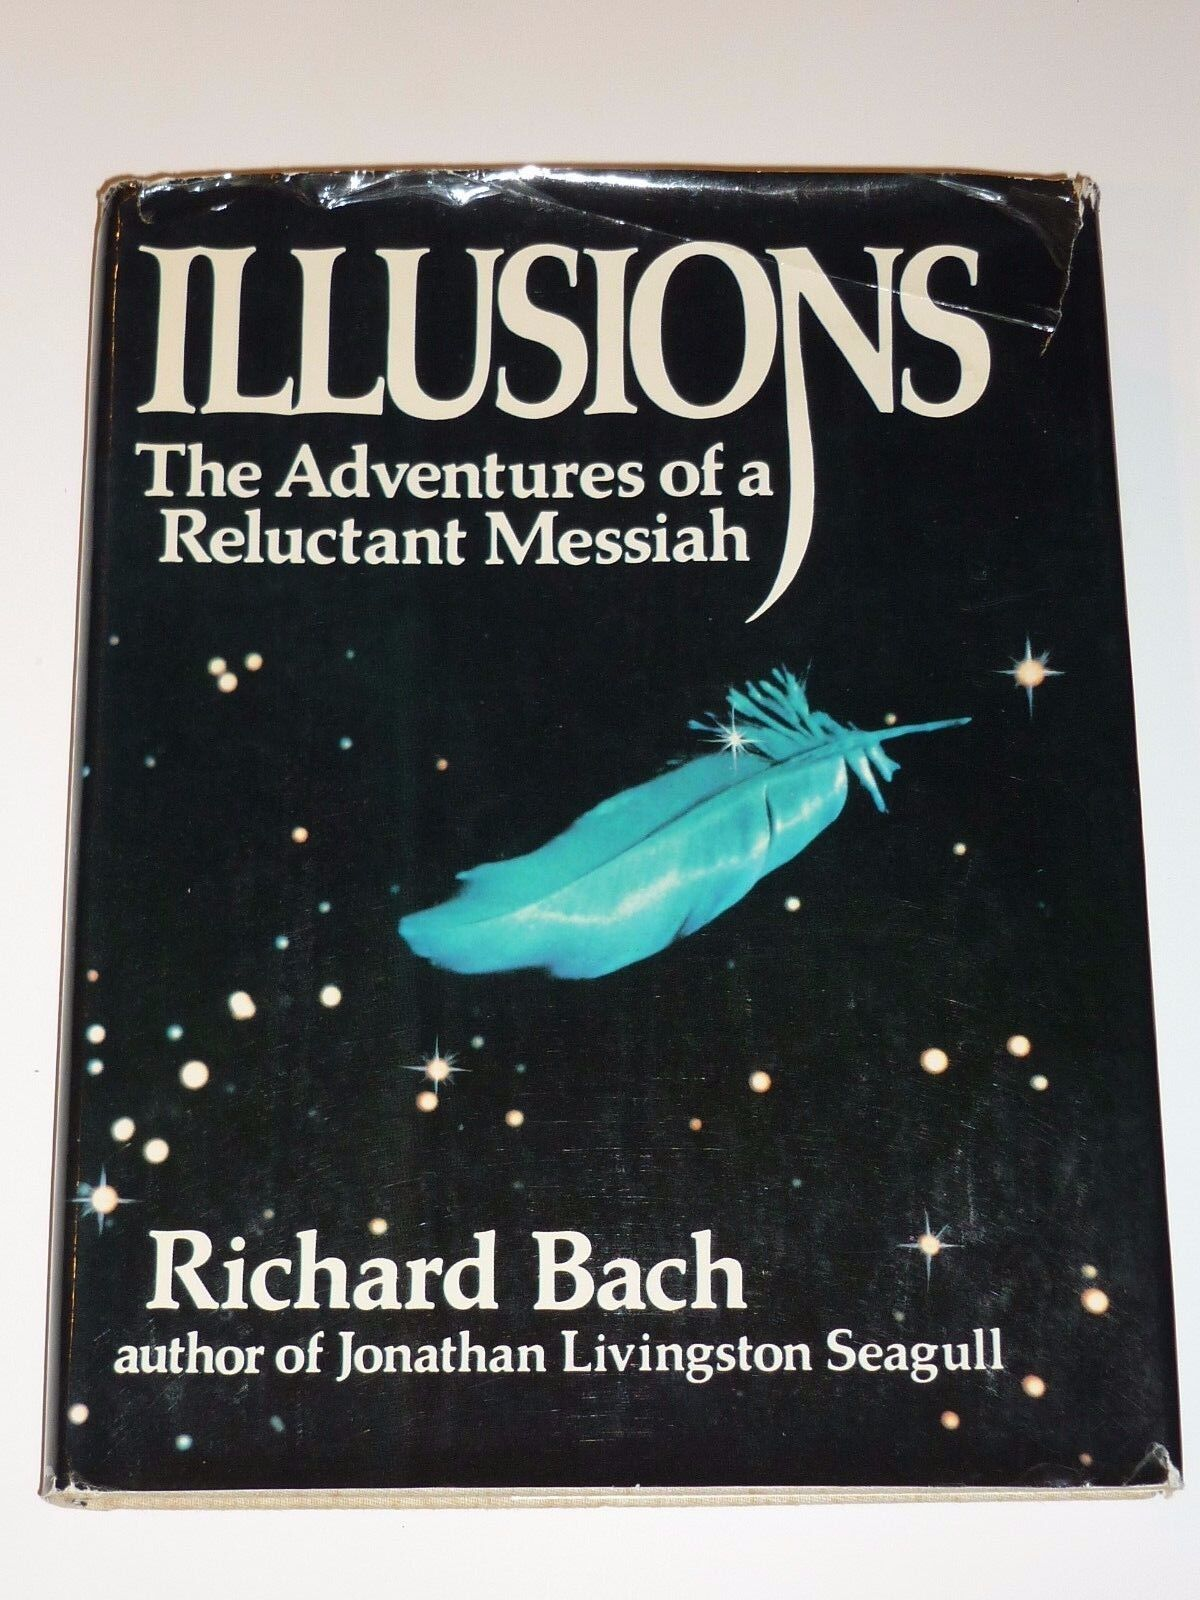 Illusions the adventures of a reluctant messiah by richard bach 1st printing